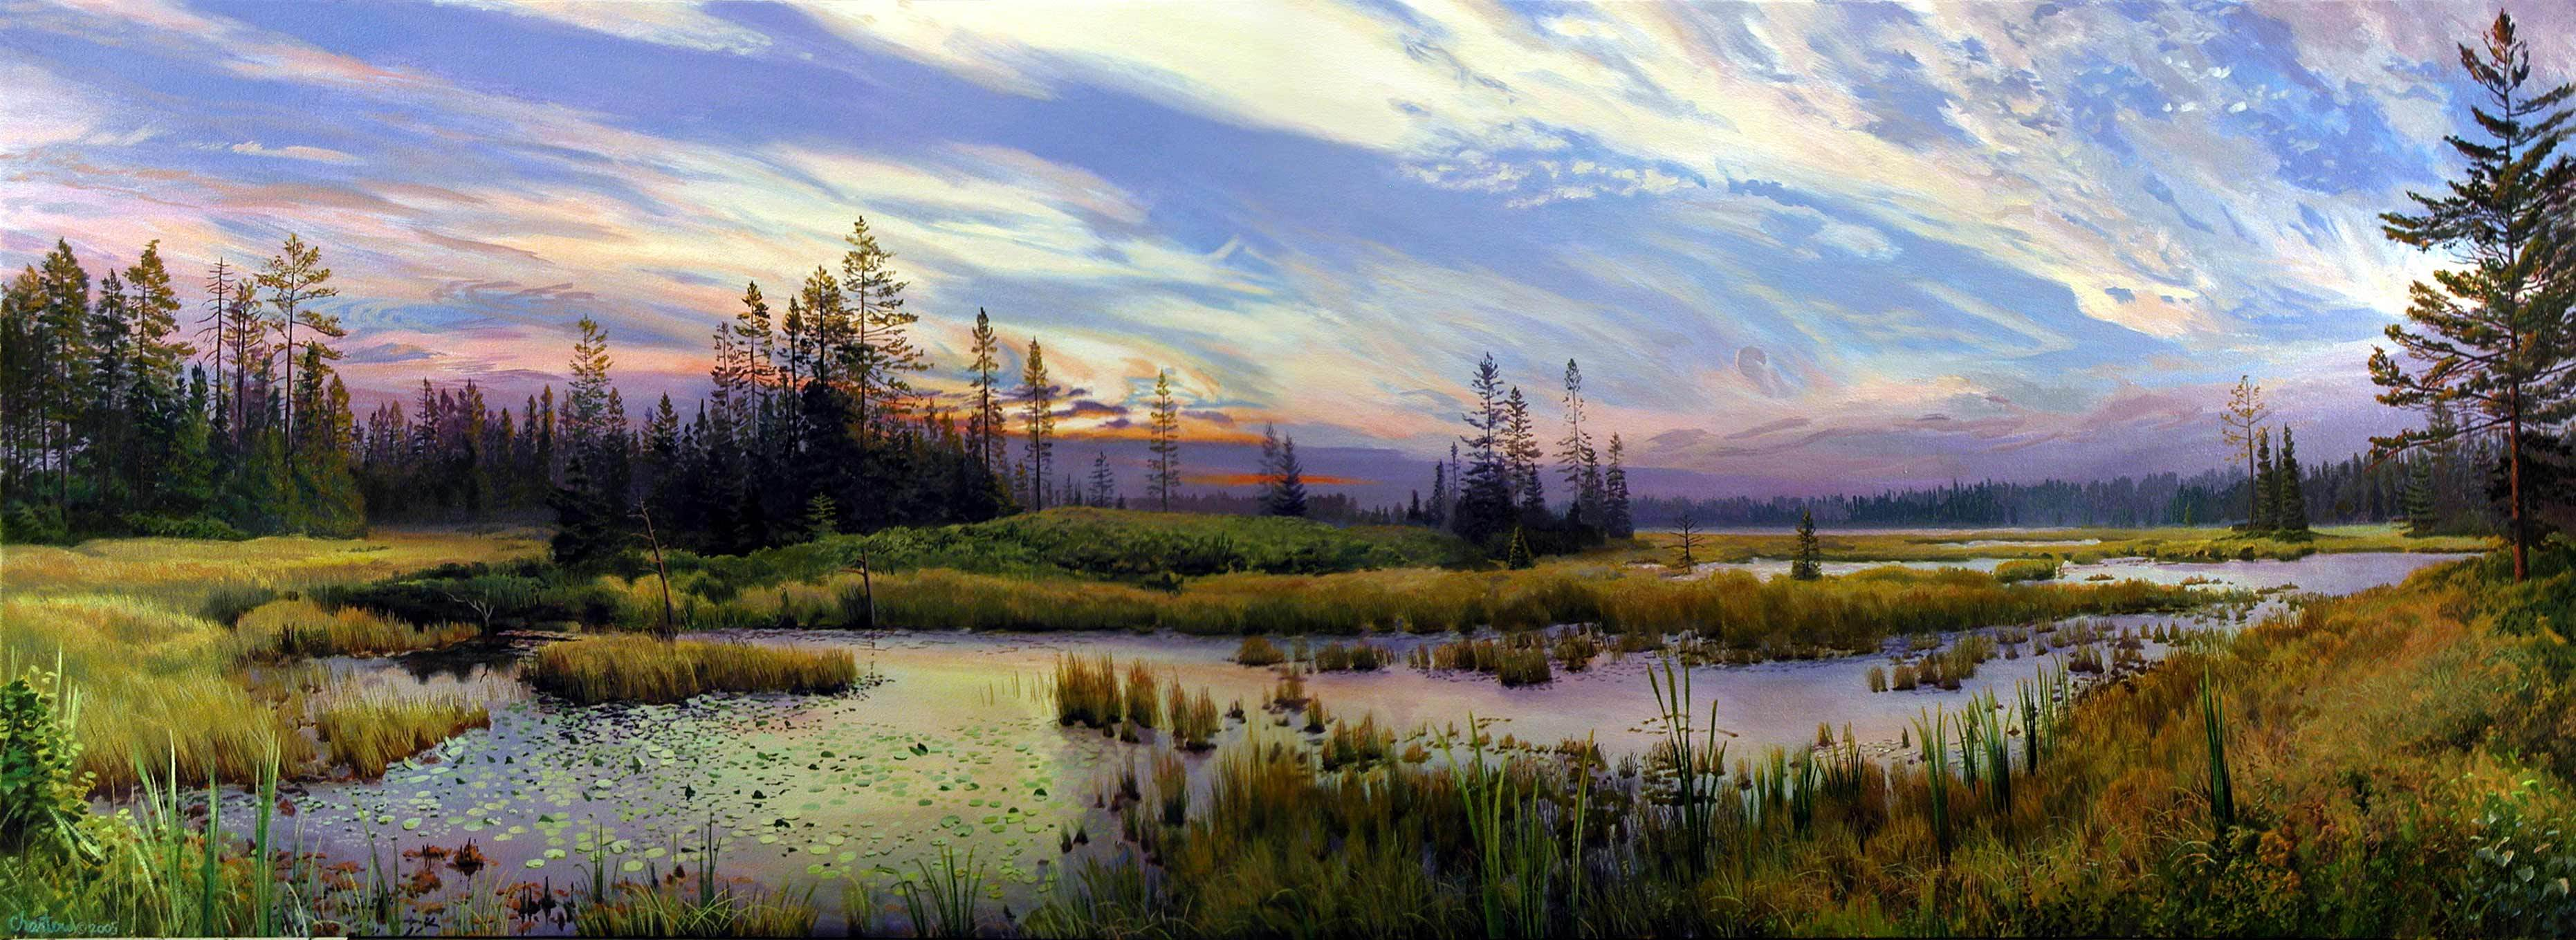 landscape painting oil nature paintings landscapes michigan arthur natural hd wallpapers canvas wildlife forest seney trees refuge national houses beauty